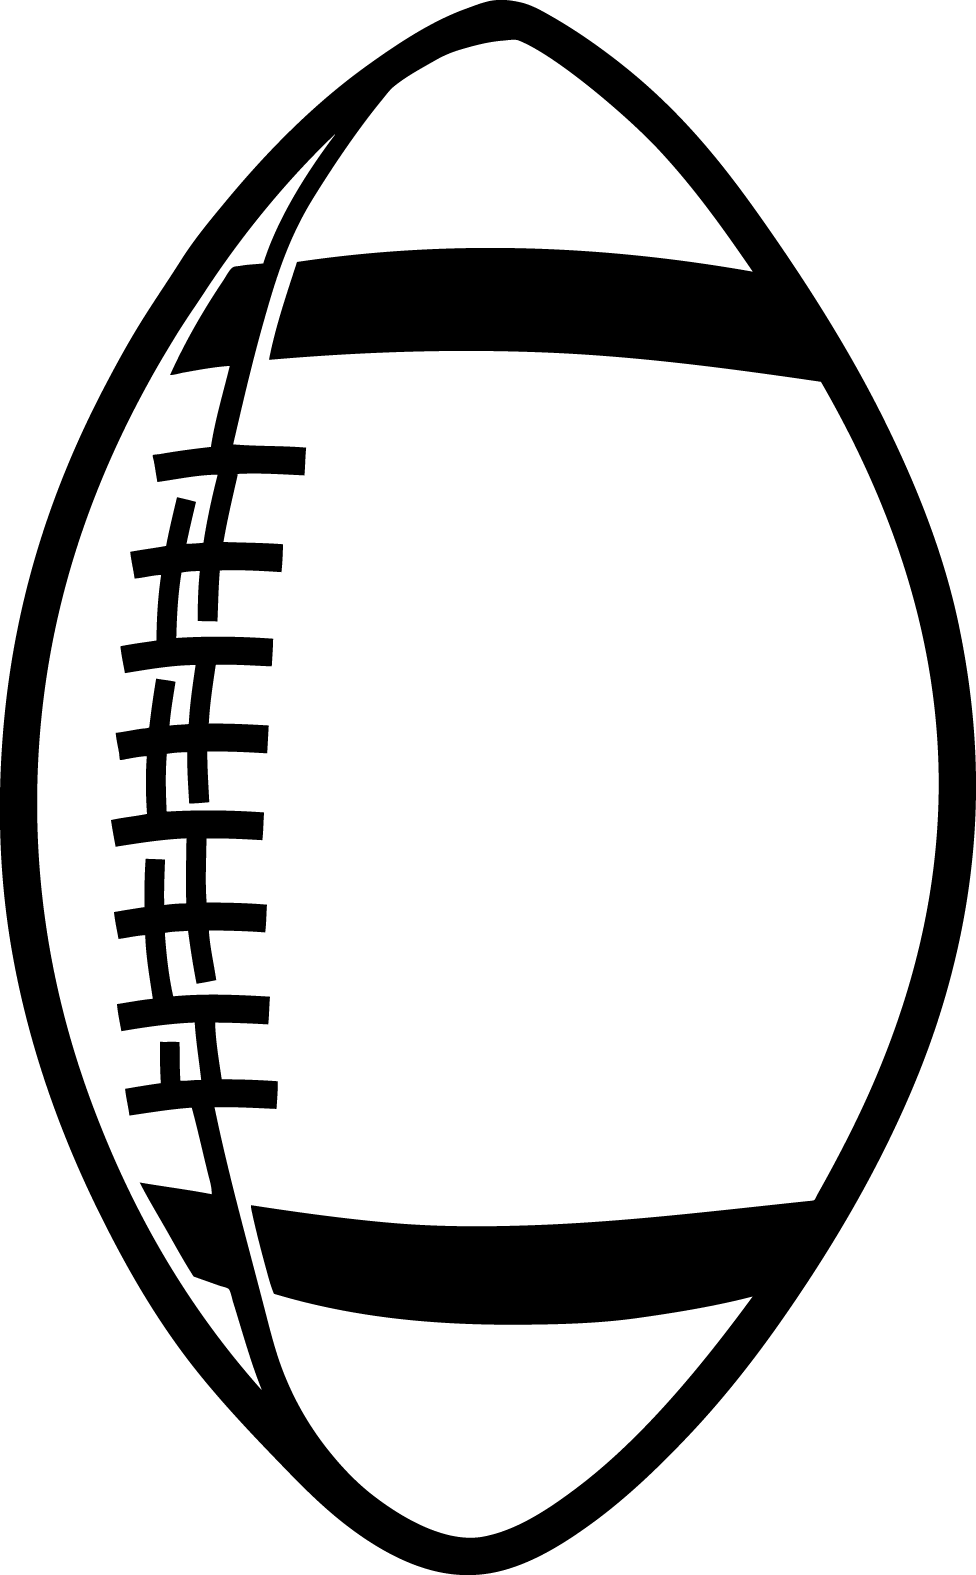 Color clipart football player. Dragonfly outline panda free